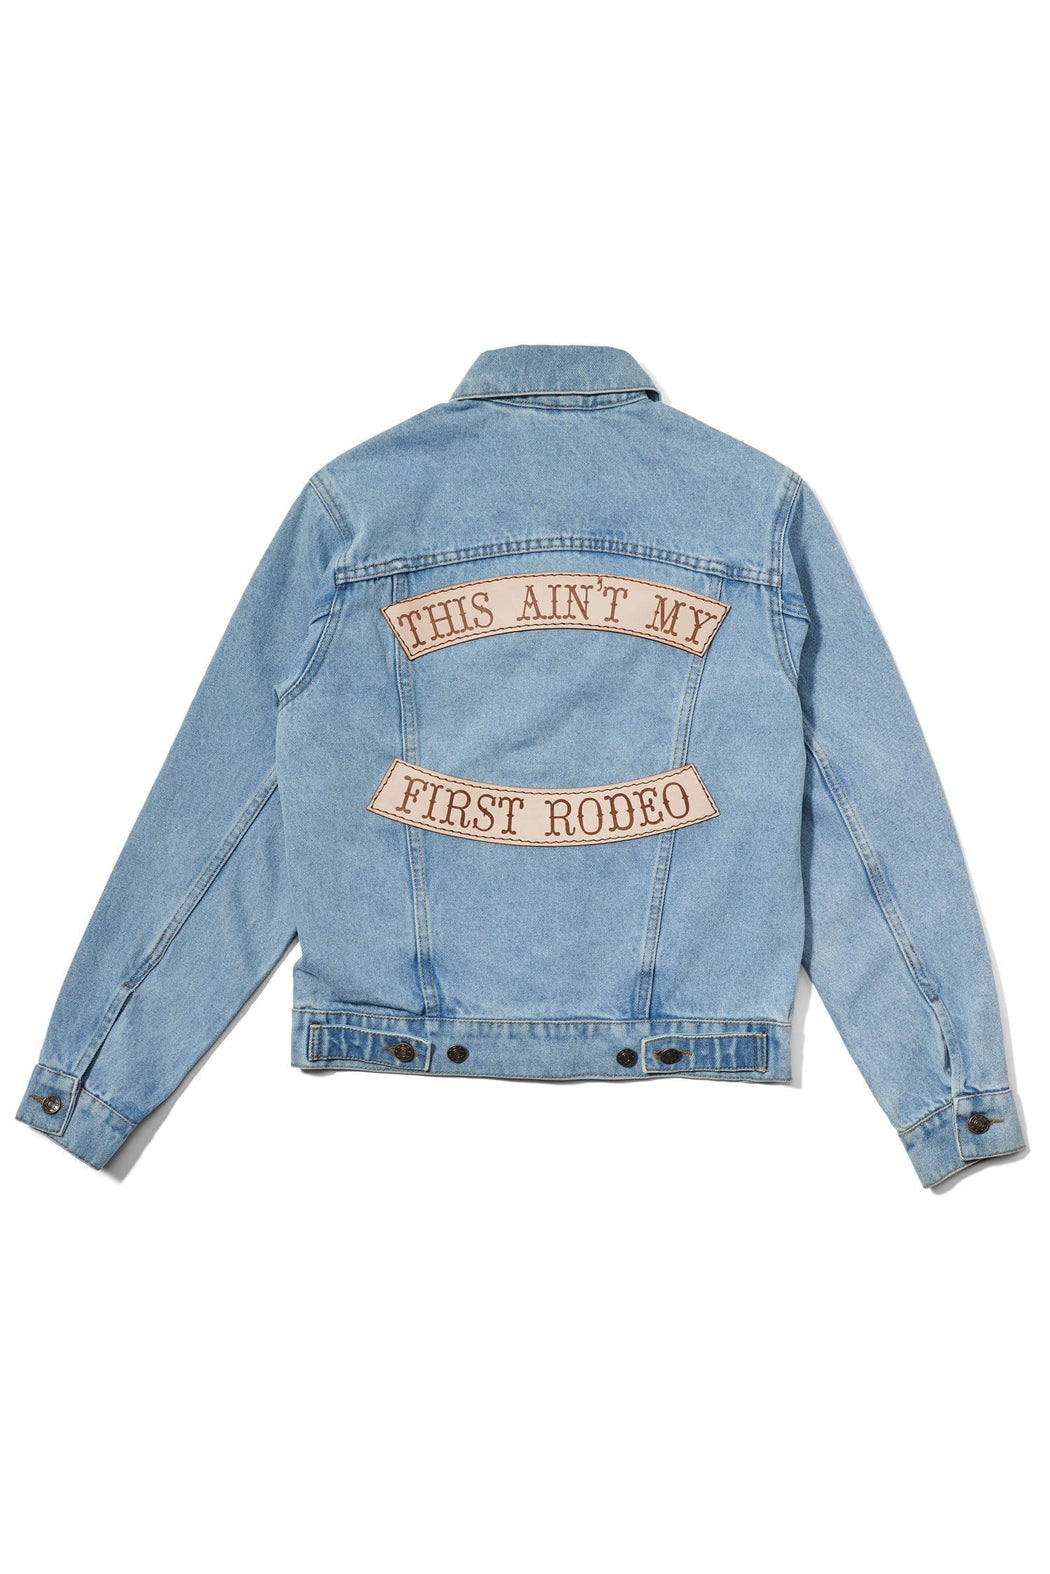 THIS AINT MY FIRST RODEO JACKET